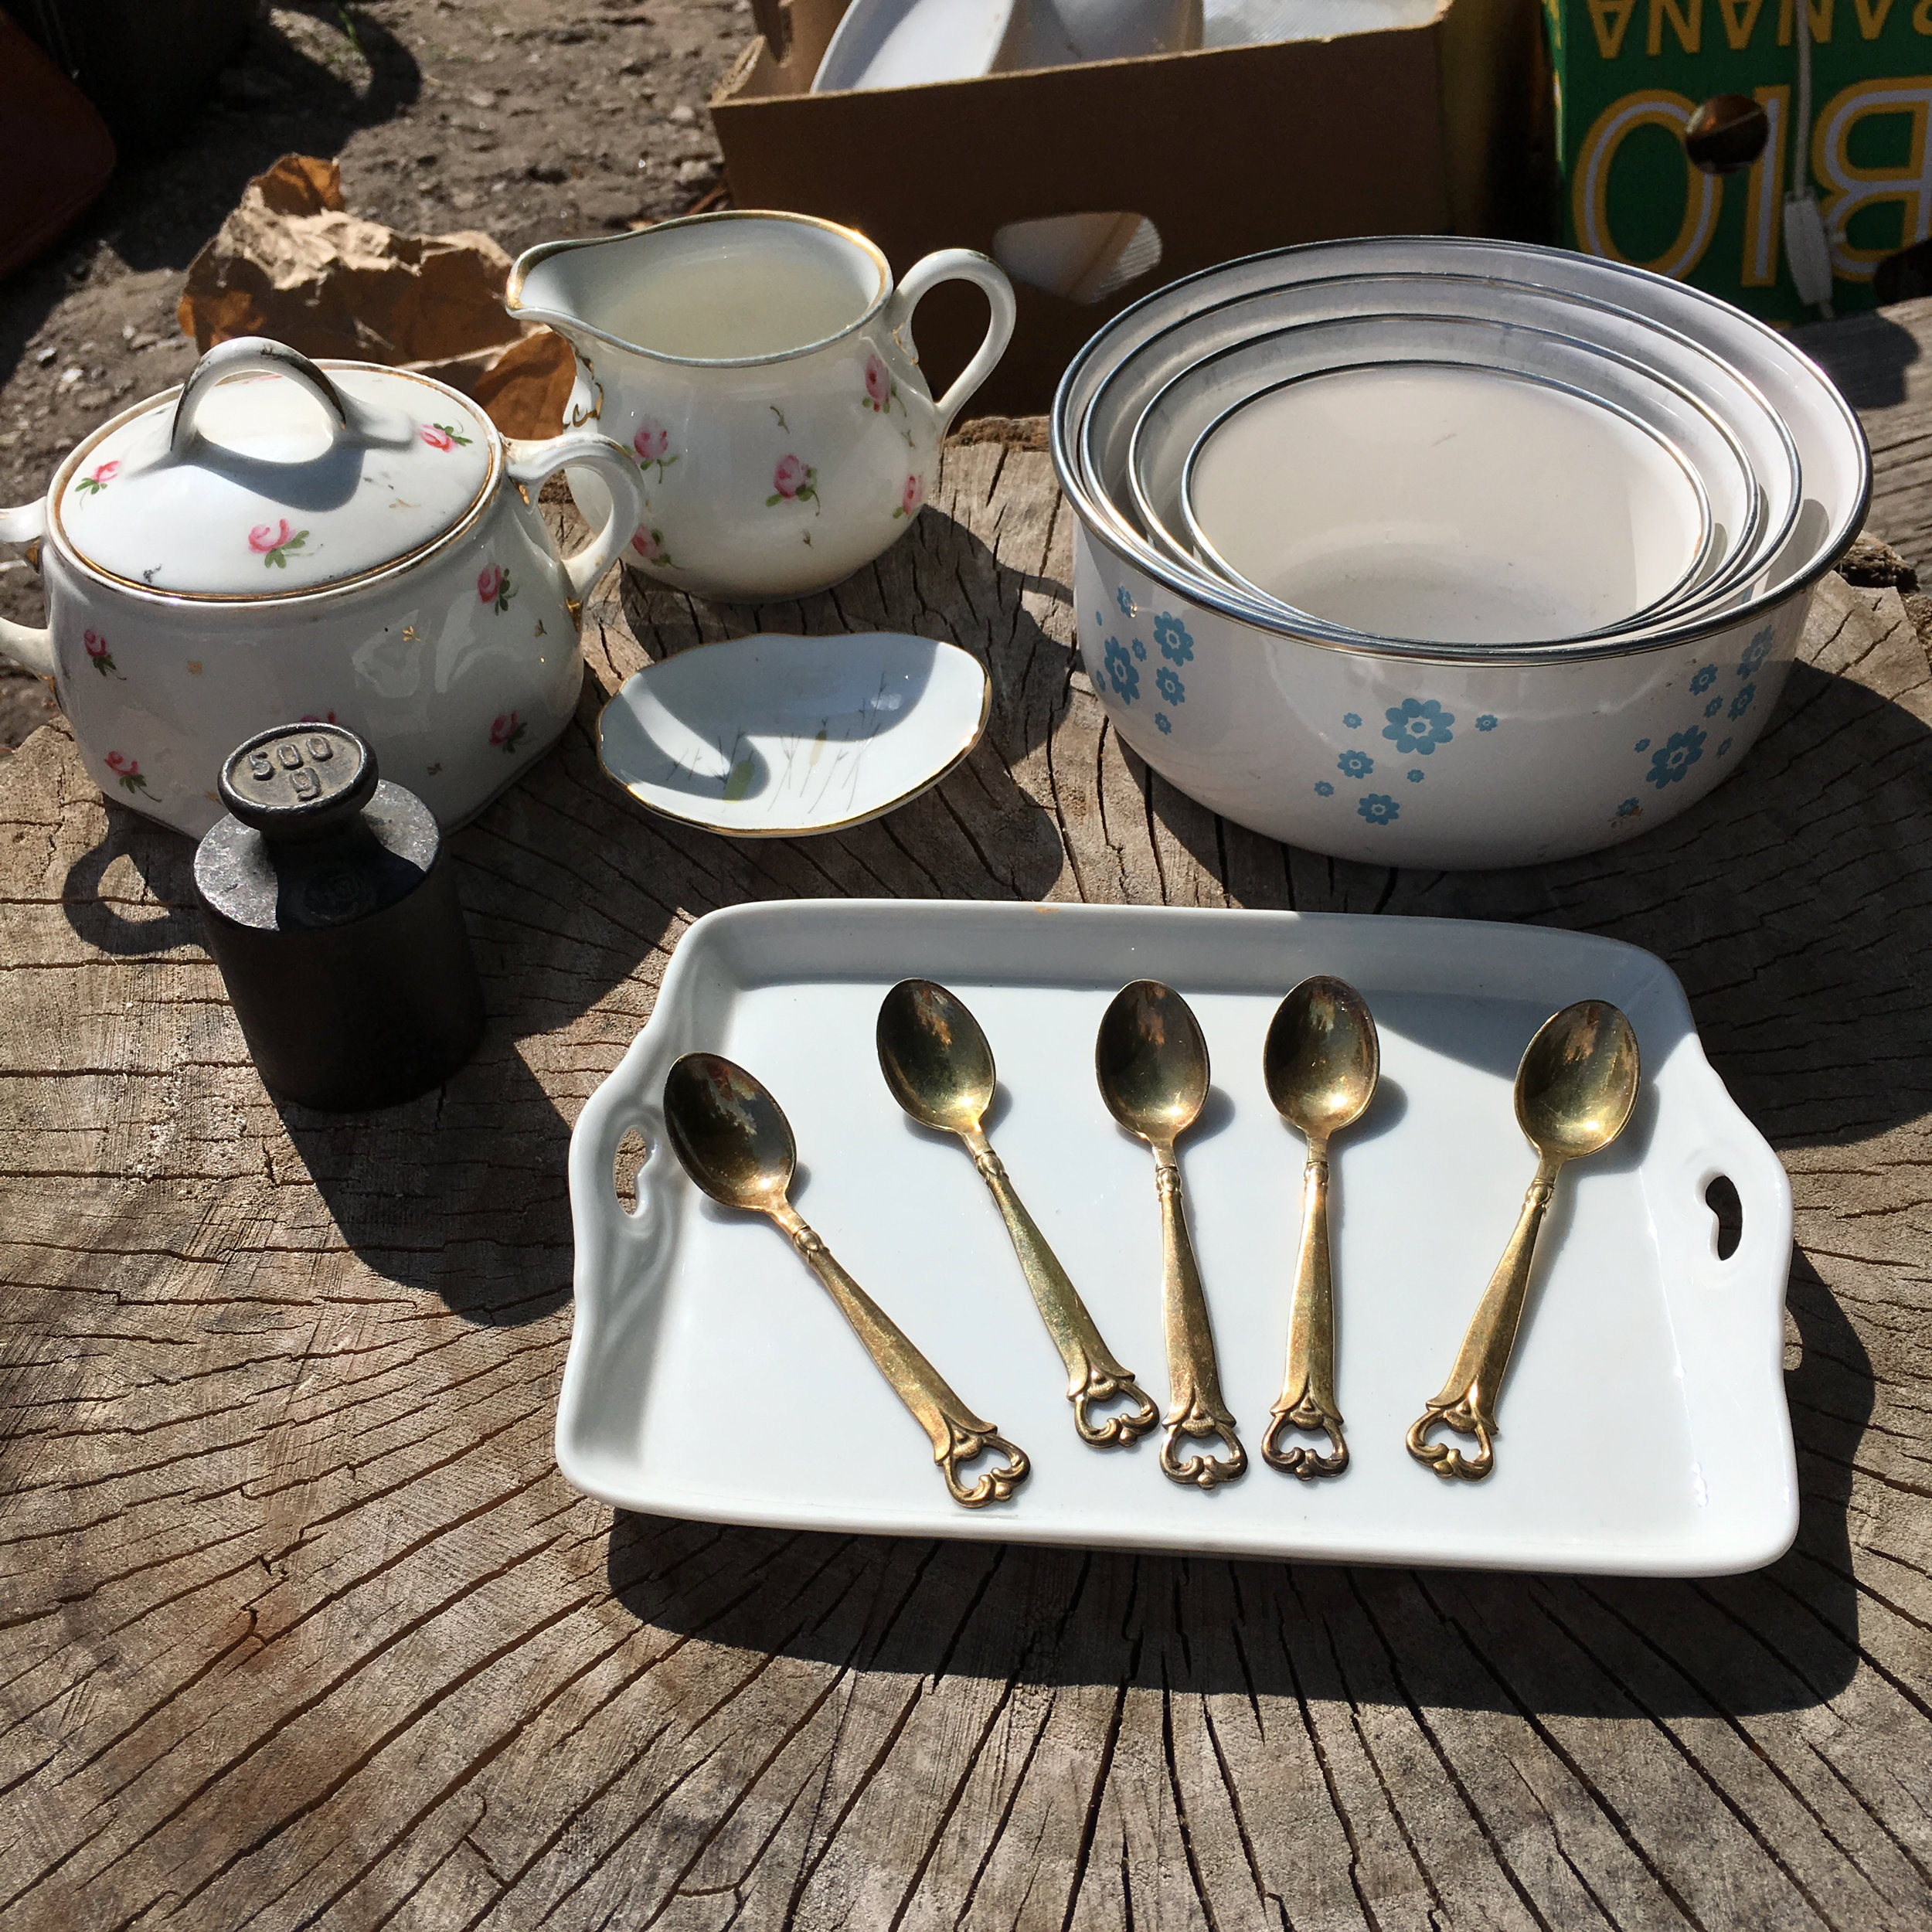 Sometimes you never know what will catch my fancy. I look for things that are both attractive and useful. I love hand painted porcelain ware and objects with a patina. I seem to have a knack for attracting demitasse spoons. They come home with me and with a bit of polish, they are brought back to life.